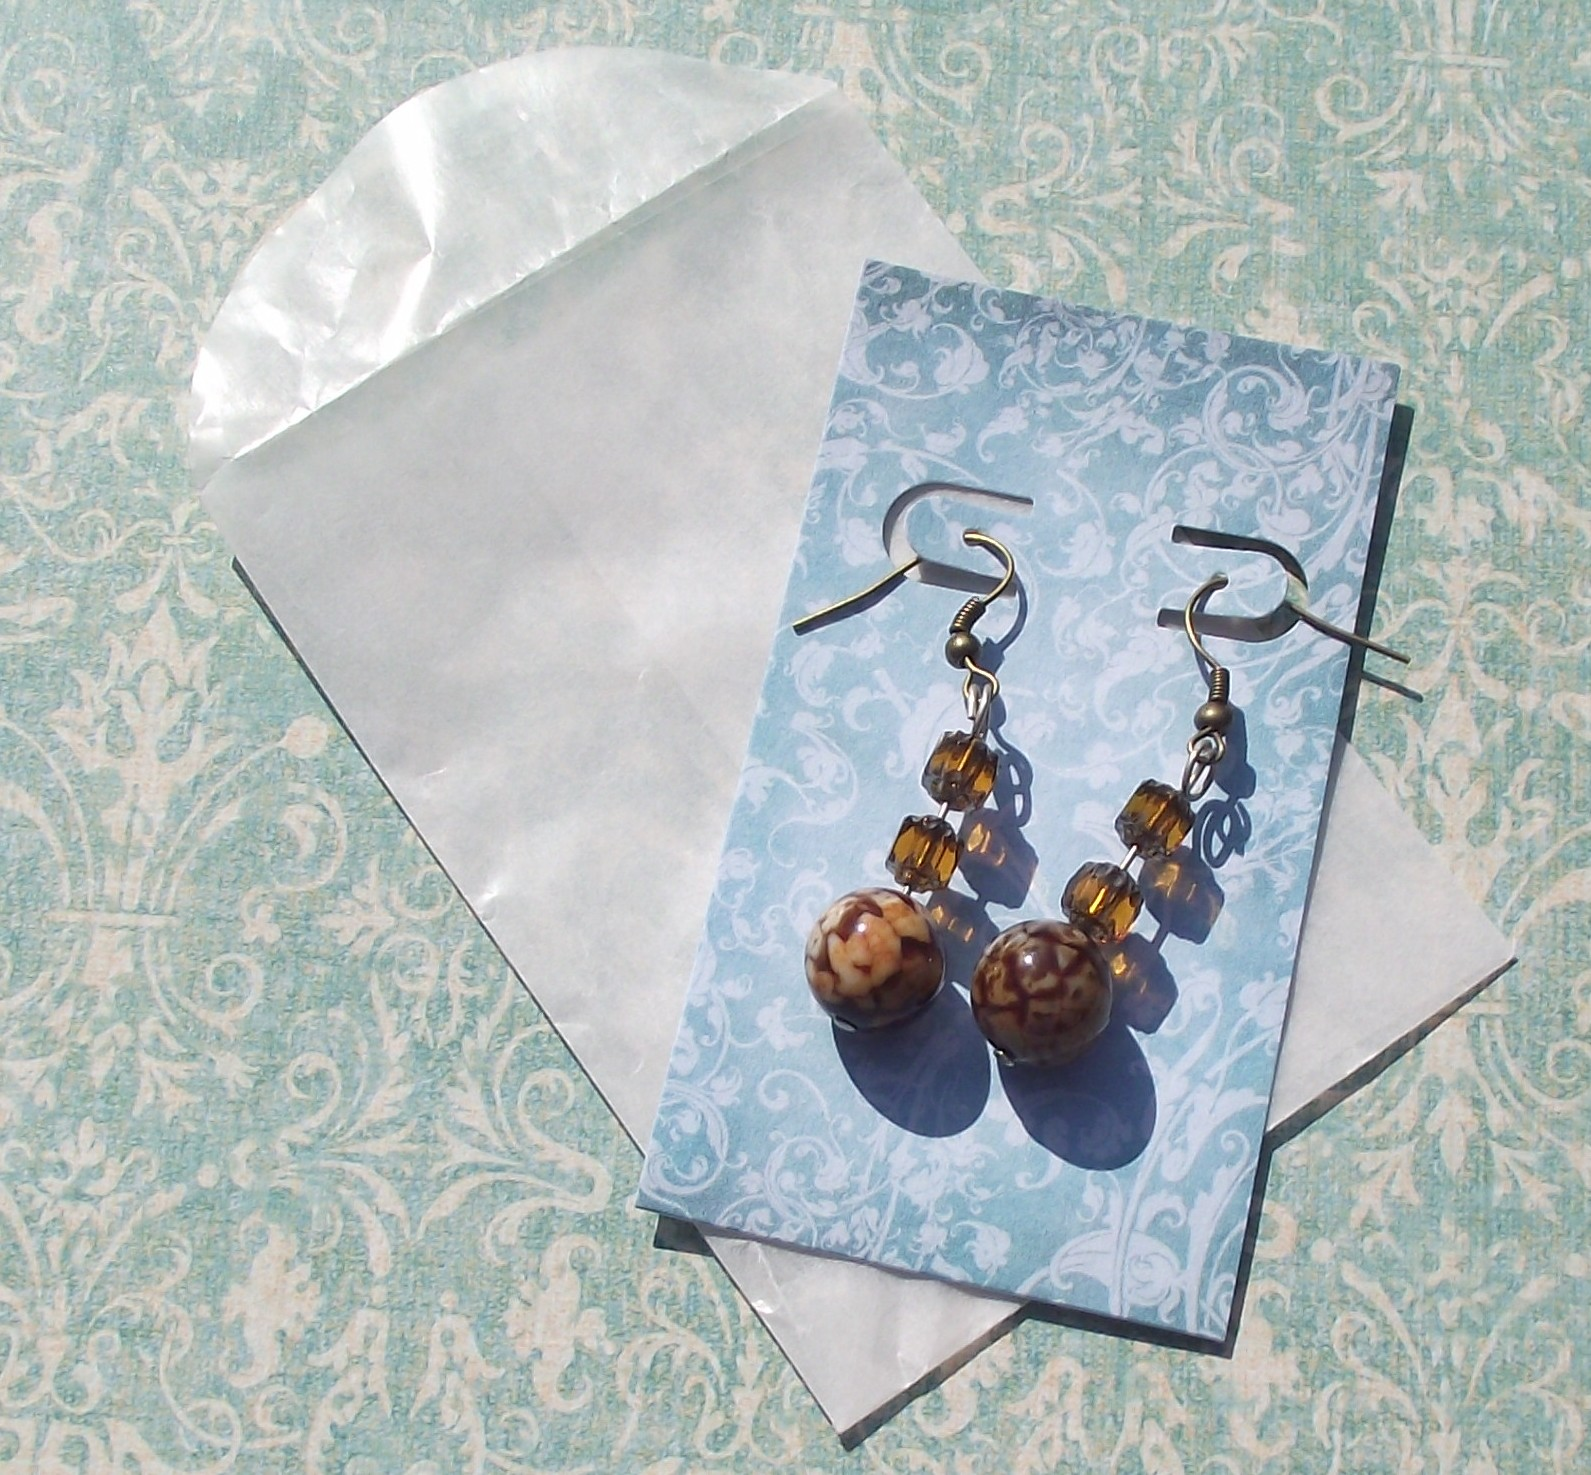 Supplies: Earring Card Adapters, Envelopes, Clear Cello Sleeves